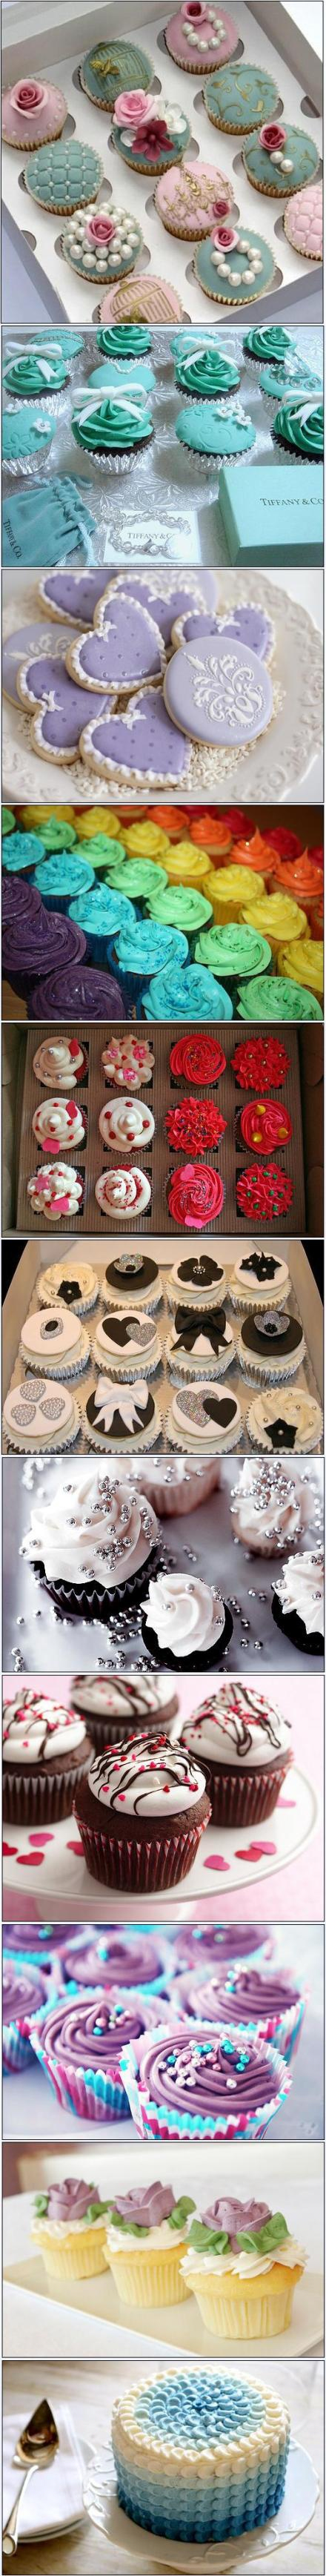 cup cakes !!!! @Charlotte May the black and white 1s would be good for harri's 21st